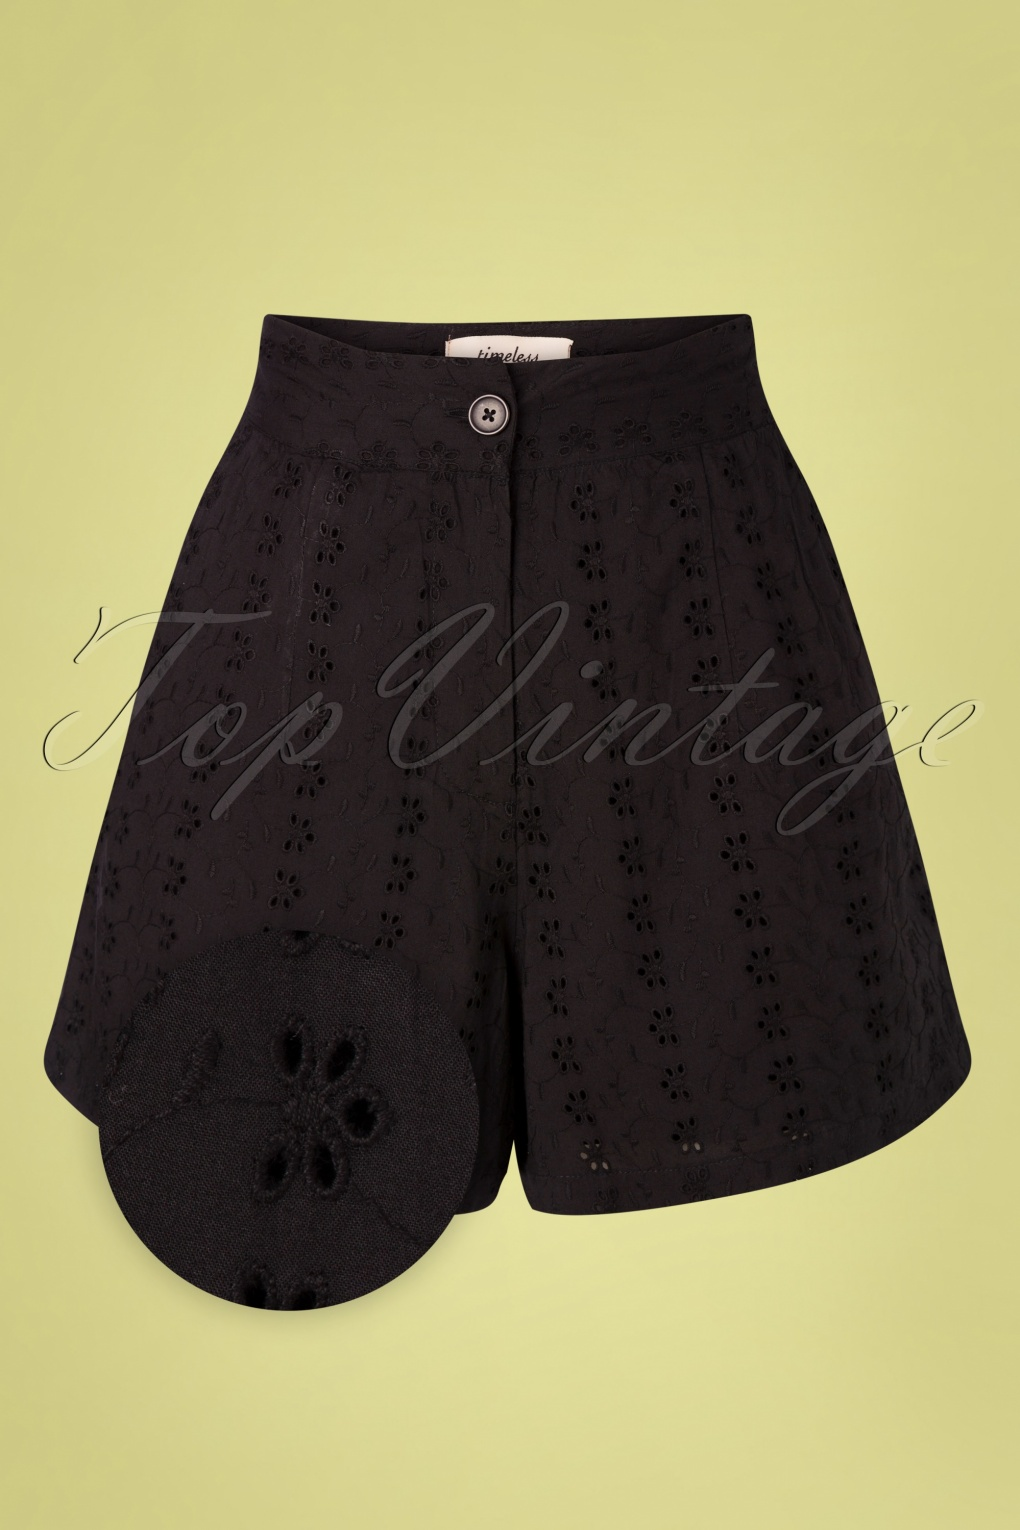 1950s Style Clothing & Fashion 50s Iris Broderie Shorts in Black £38.53 AT vintagedancer.com